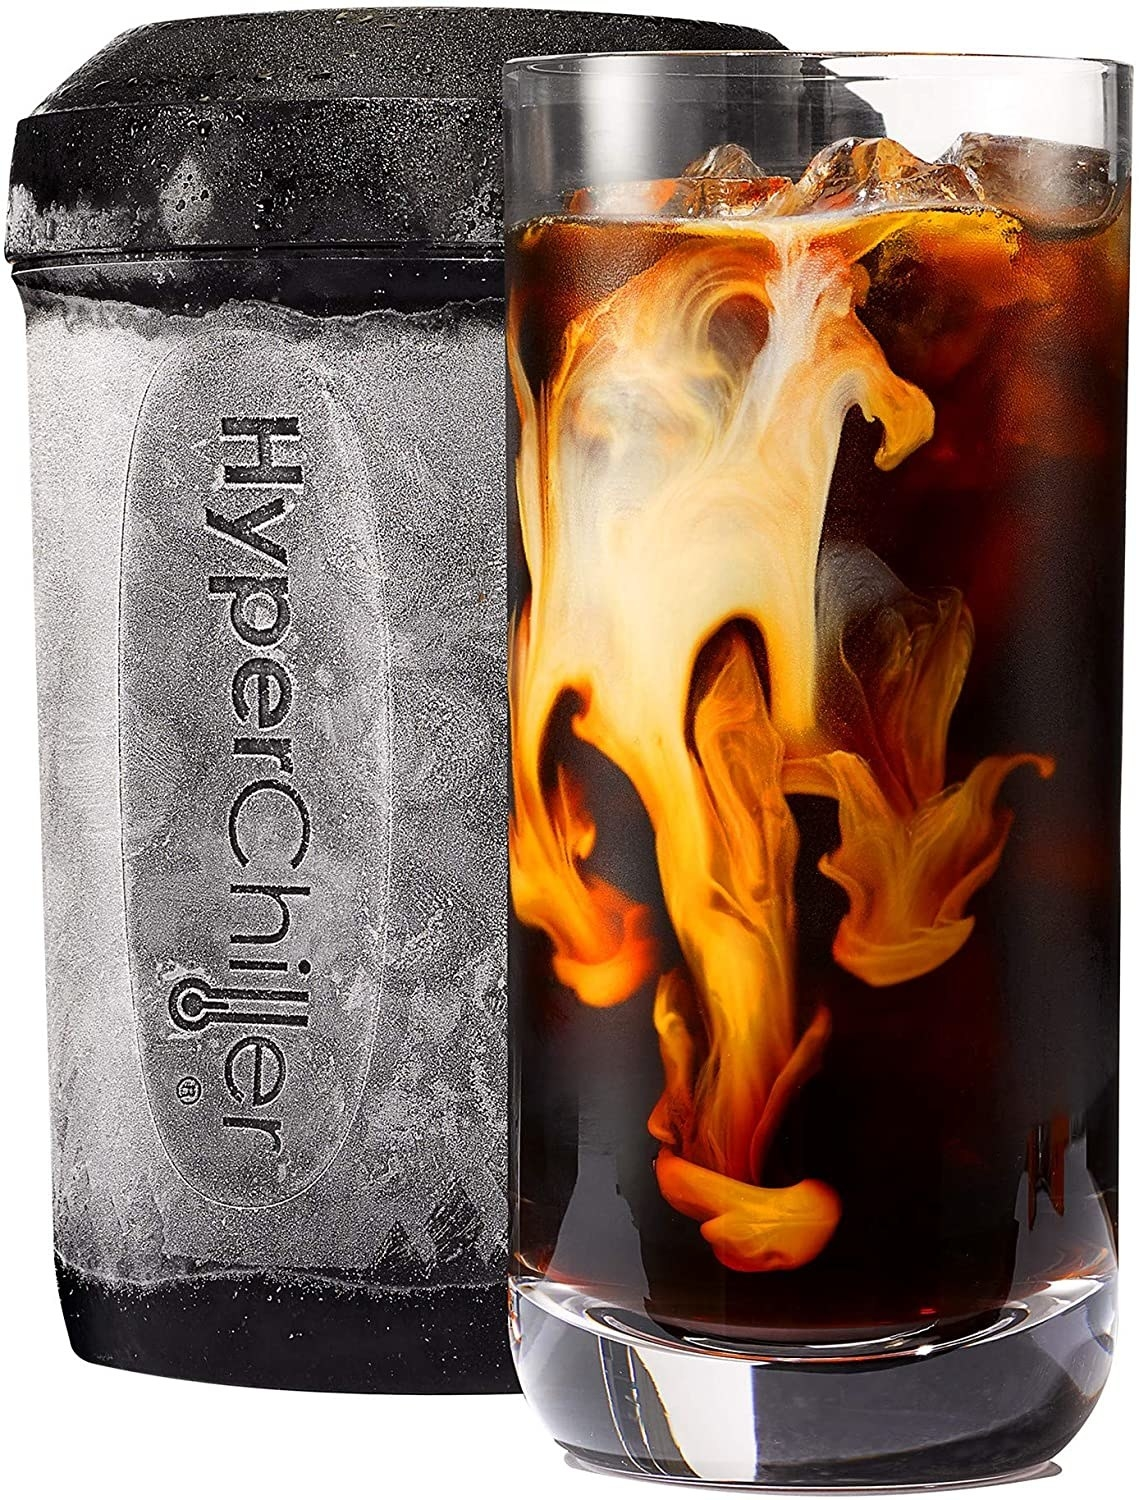 The frozen black canister next to a glass of iced coffee